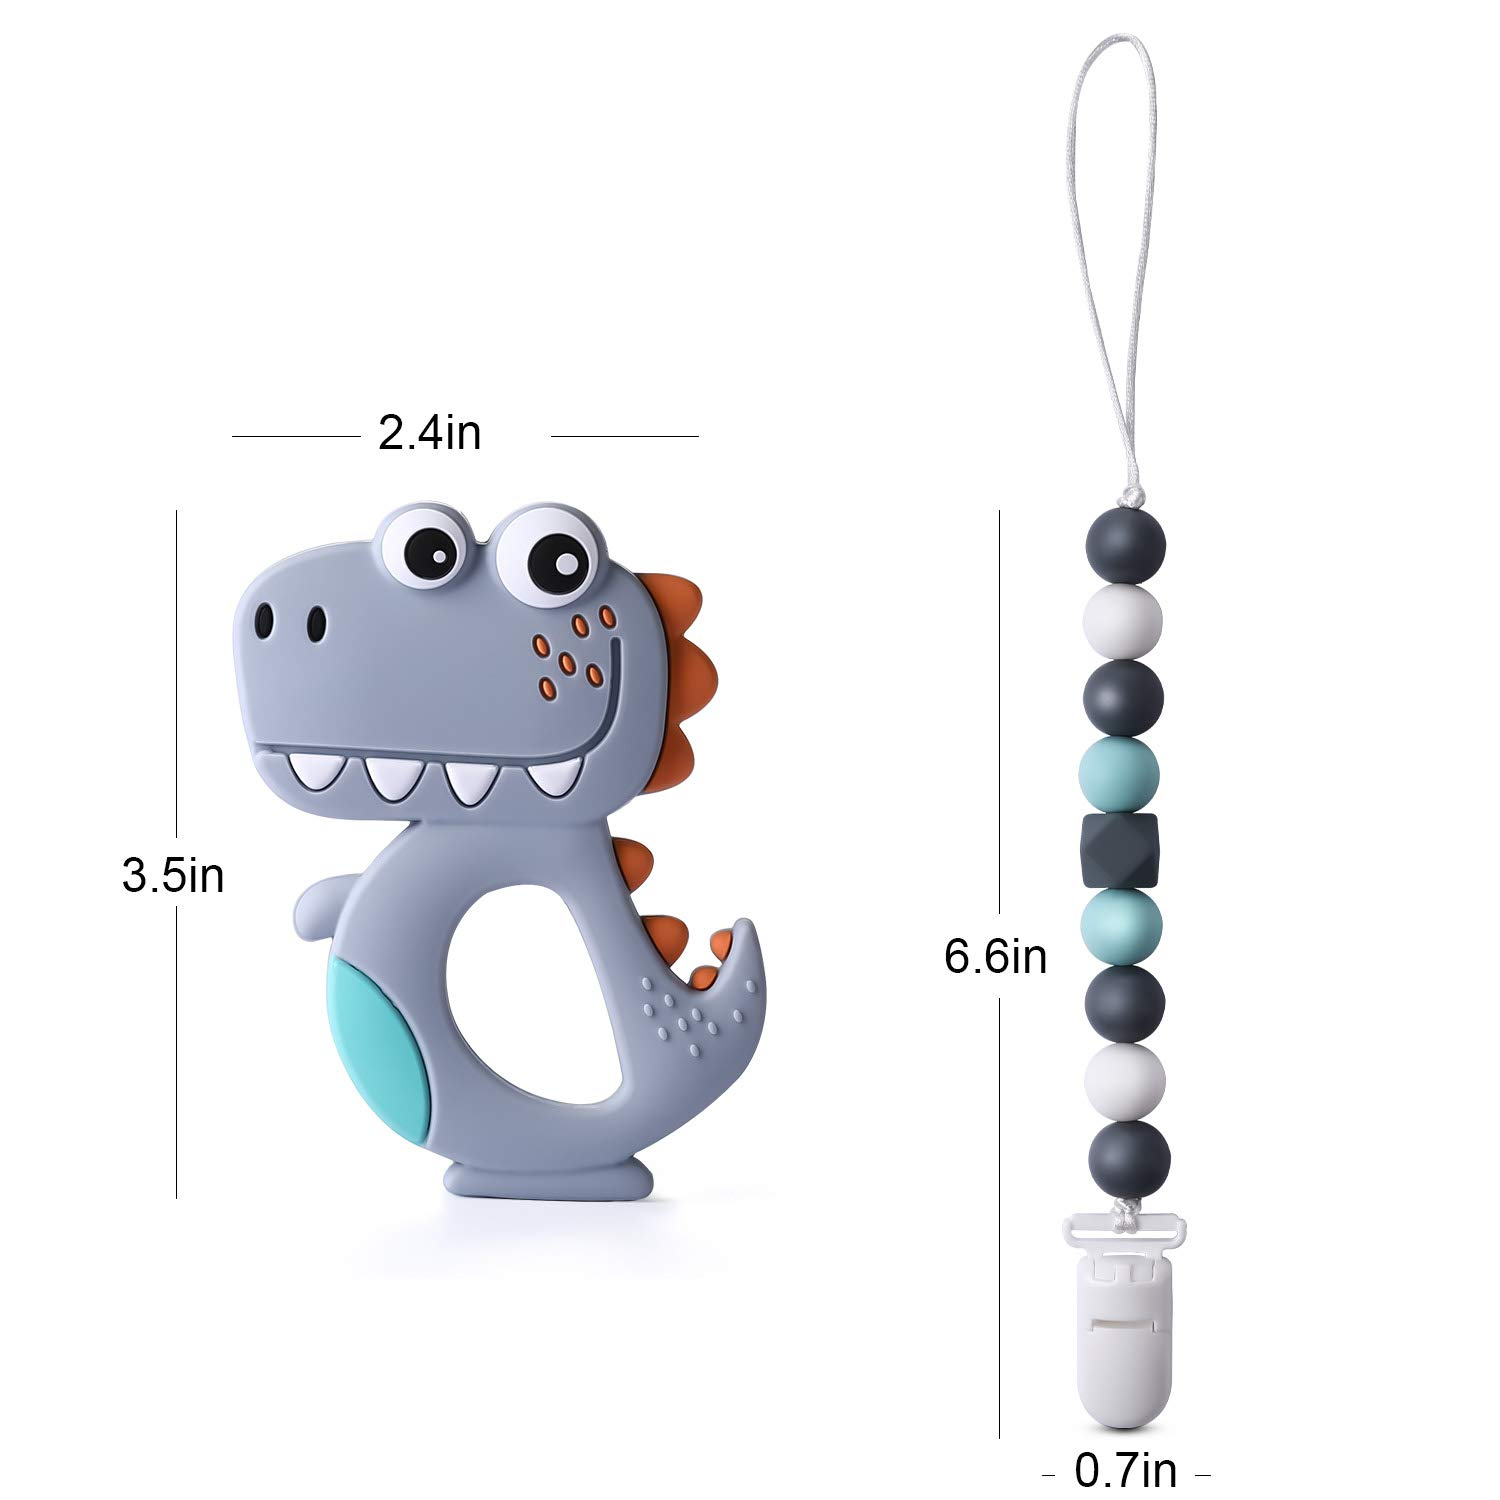 for Boy//Girl Dinosaur Teether with Pacifier Clip Holder Kit Baby Teething Toys by Pandamelon BPA Free Silicone for Newborn Infants